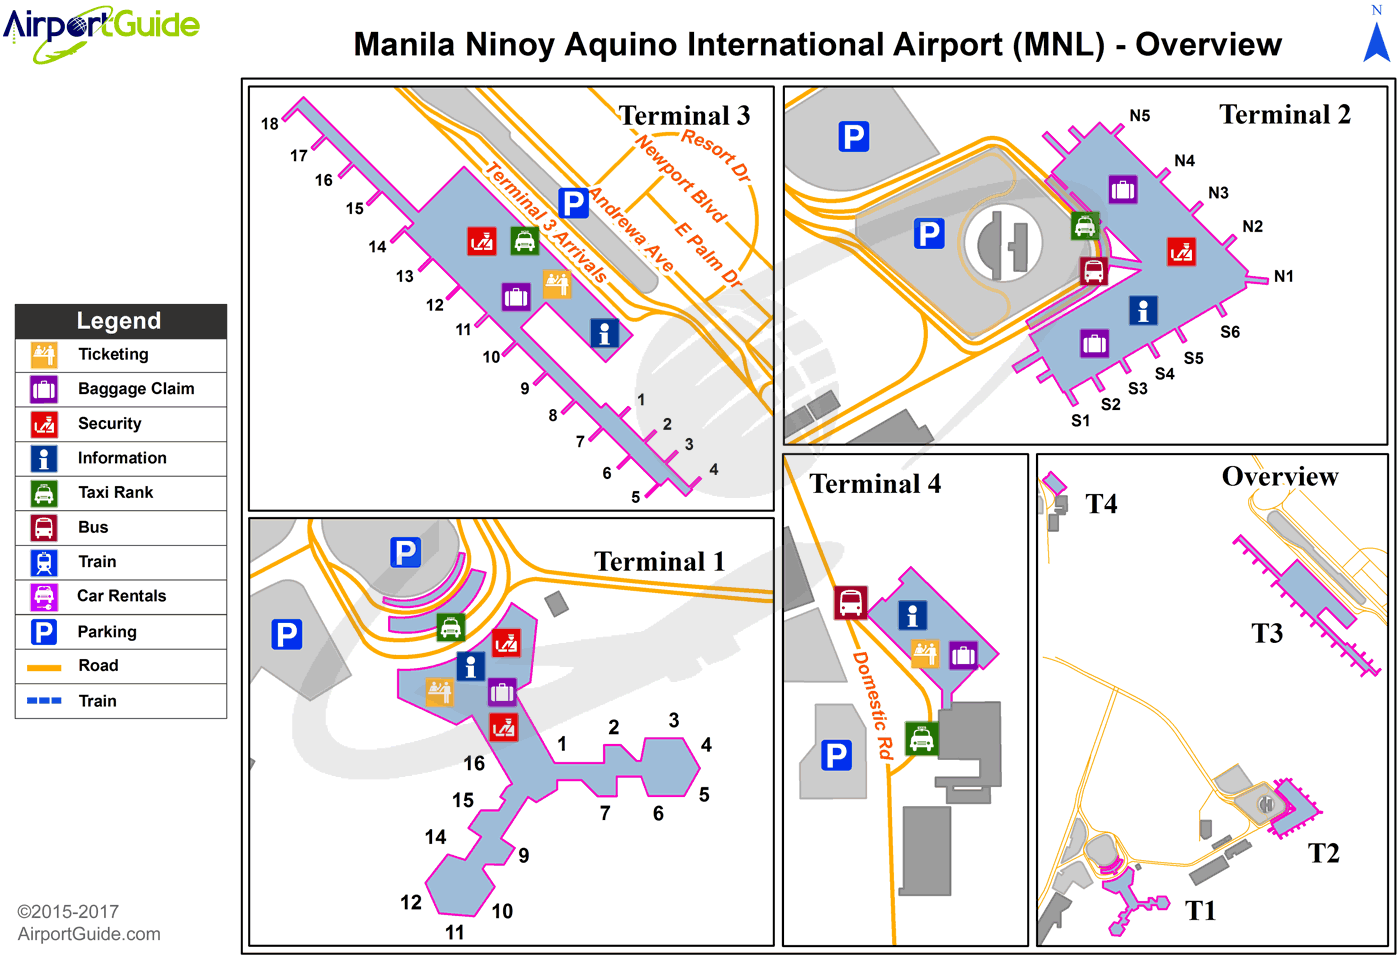 Manila - Ninoy Aquino International (MNL) Airport Terminal Map - Overview